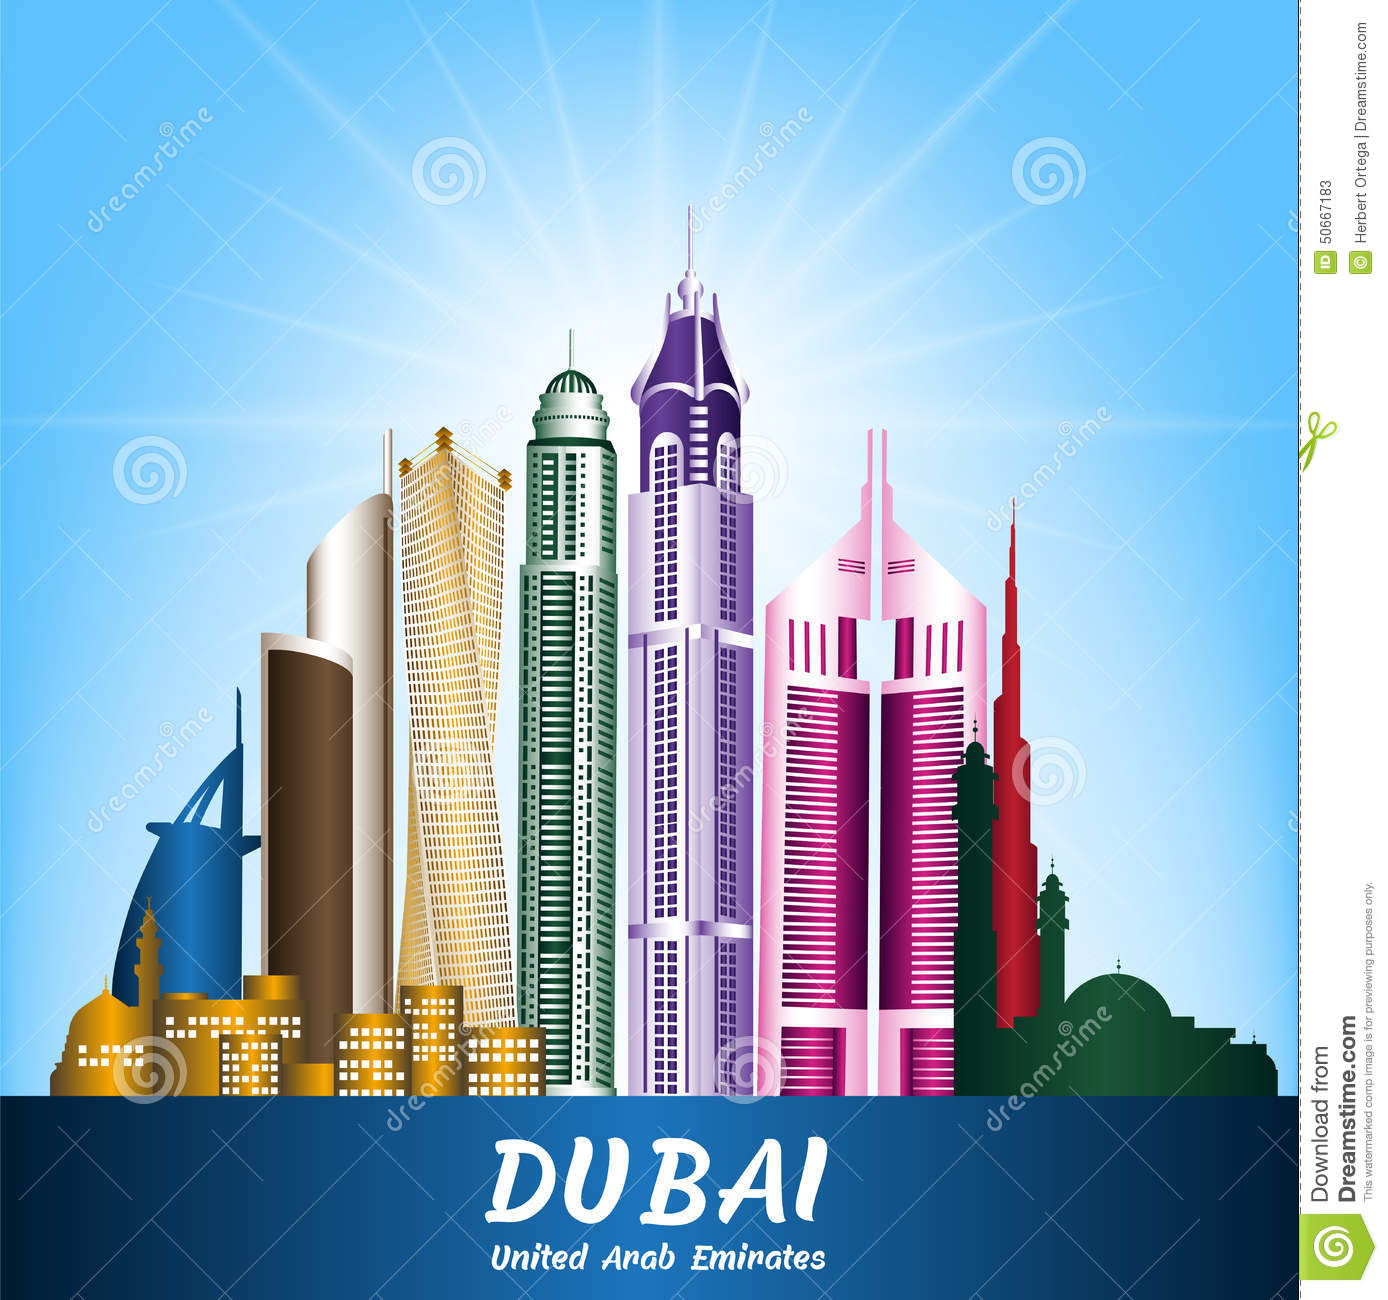 City of dubai uae famous buildings stock vector for Famous structures in dubai